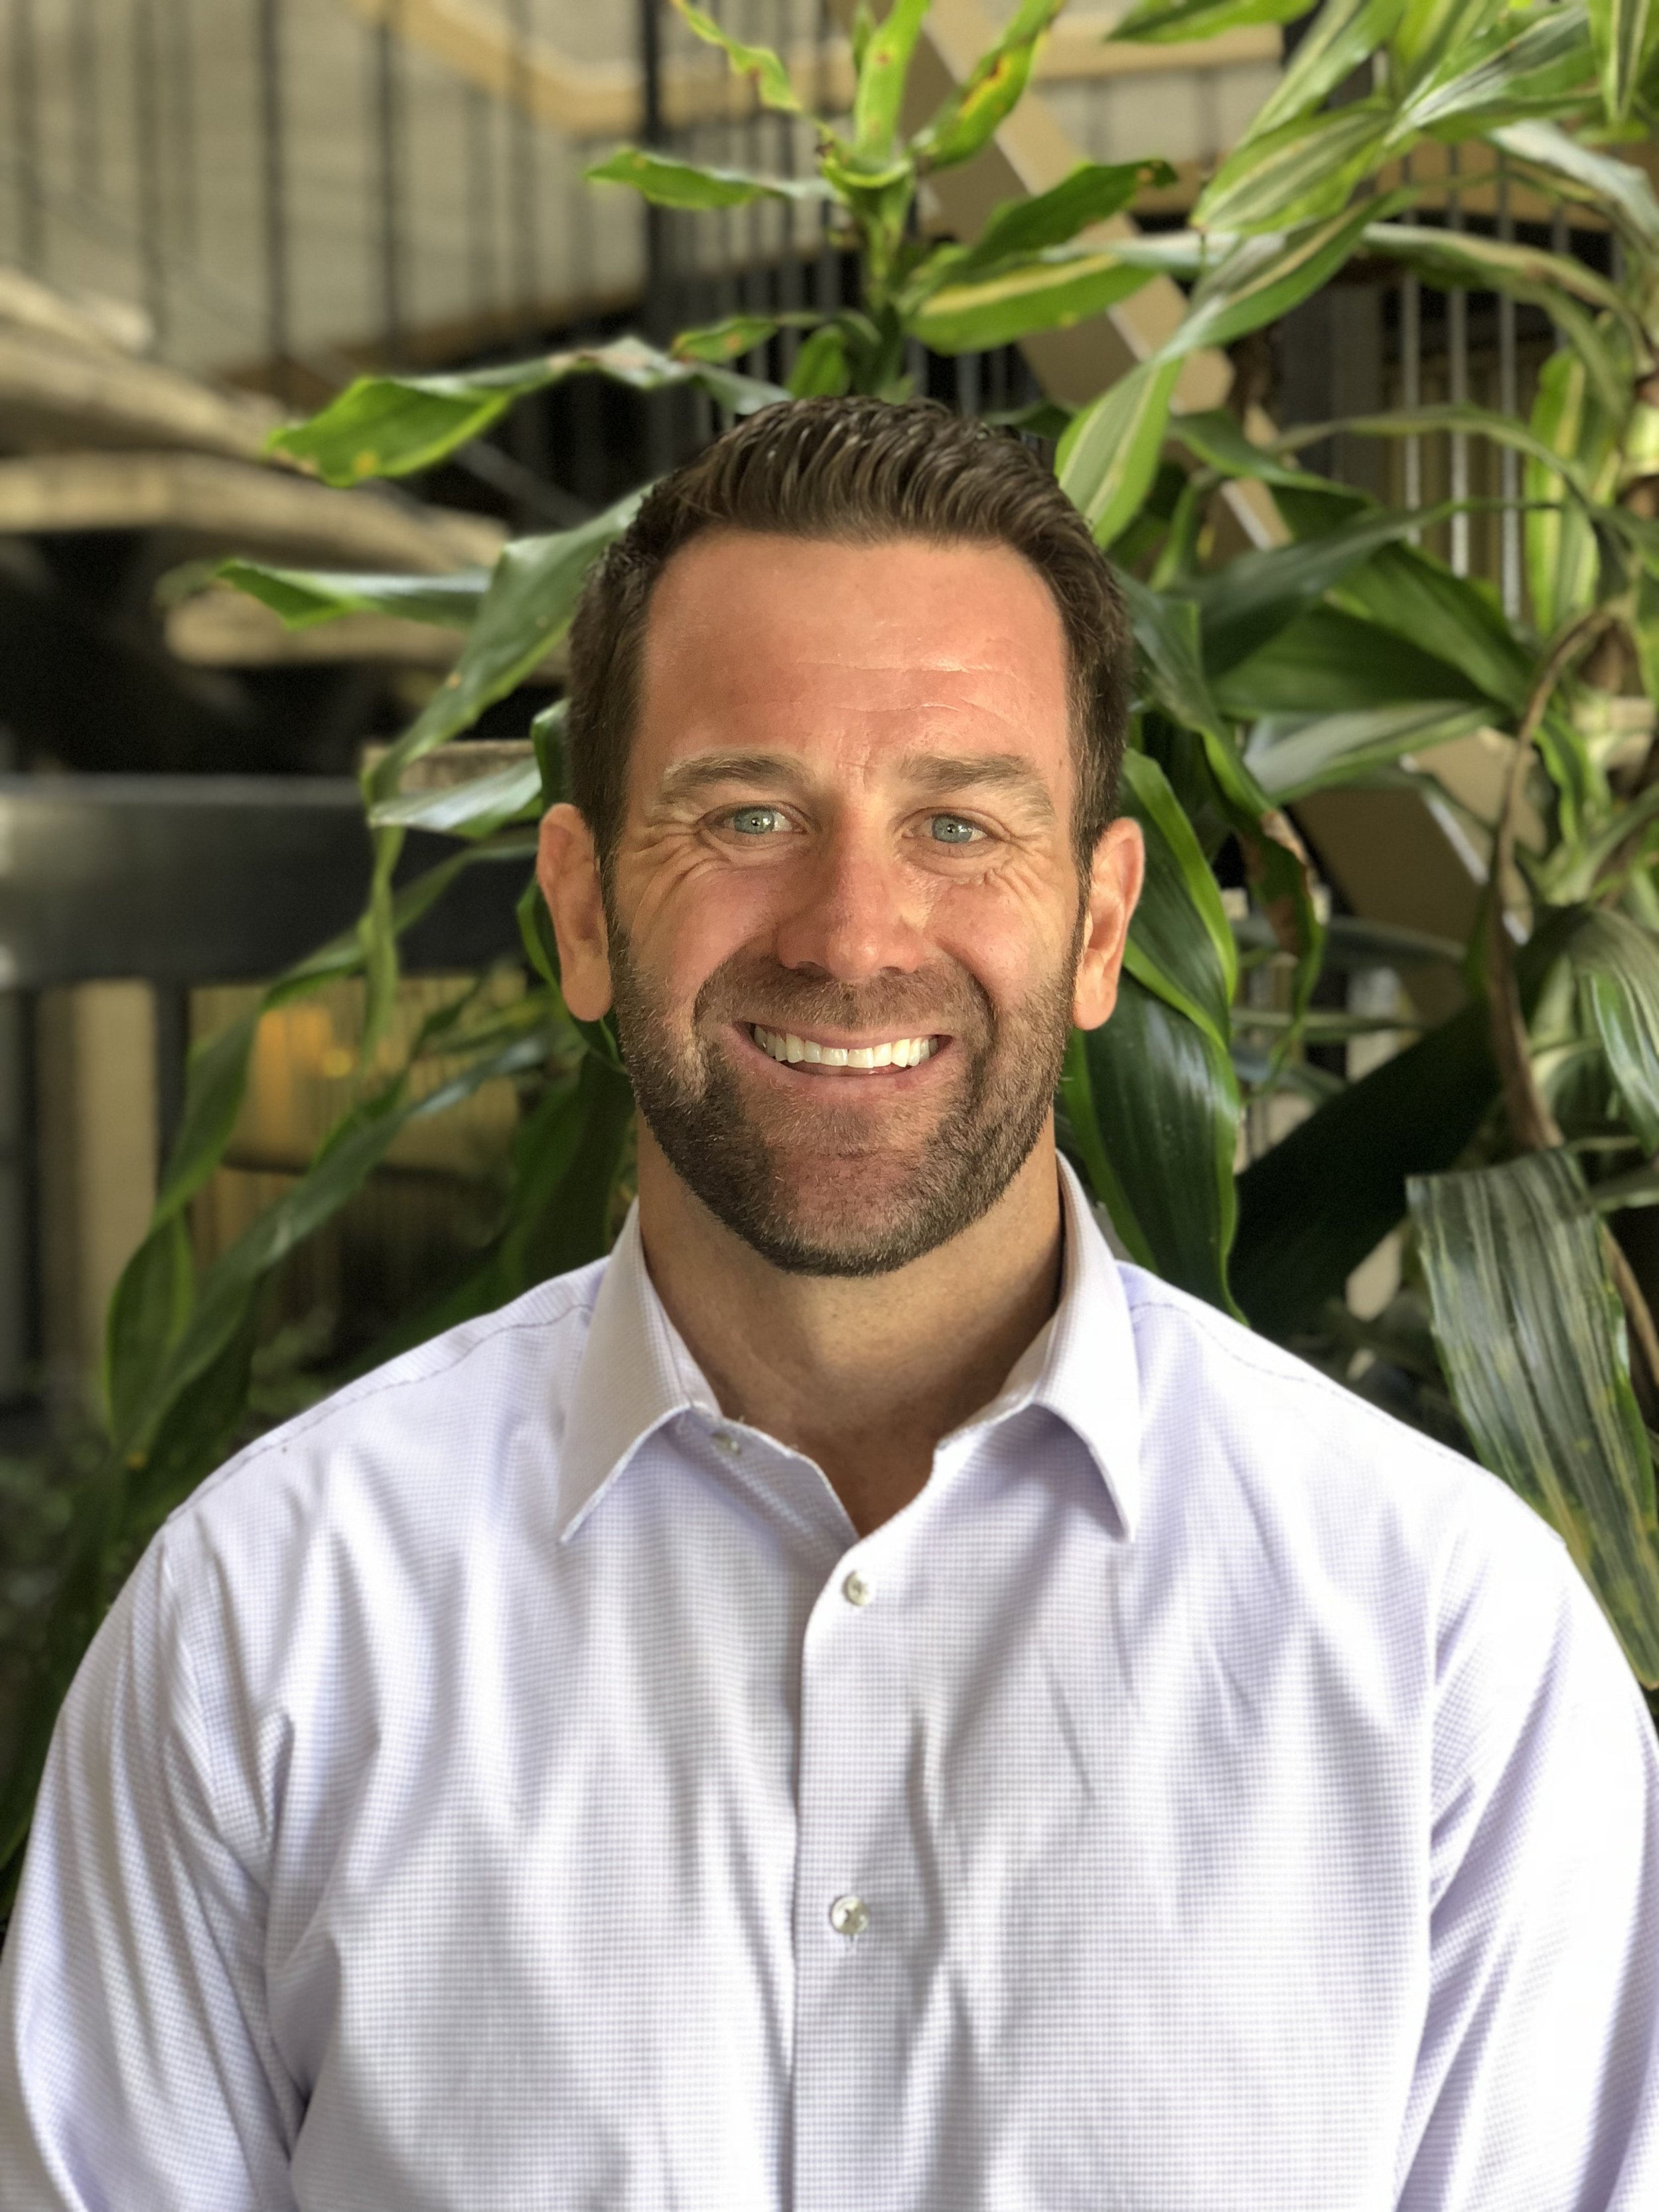 Aaron Hoke - Aaron Hoke joined AIM in 1998, and became involved in management just two years later. In the years 2001 and 2002, Aaron had won AIM's prestigious TOP Organization award. Aaron qualified for the AIM Executive Committee in 2001, and continues to work out of the Anaheim office.